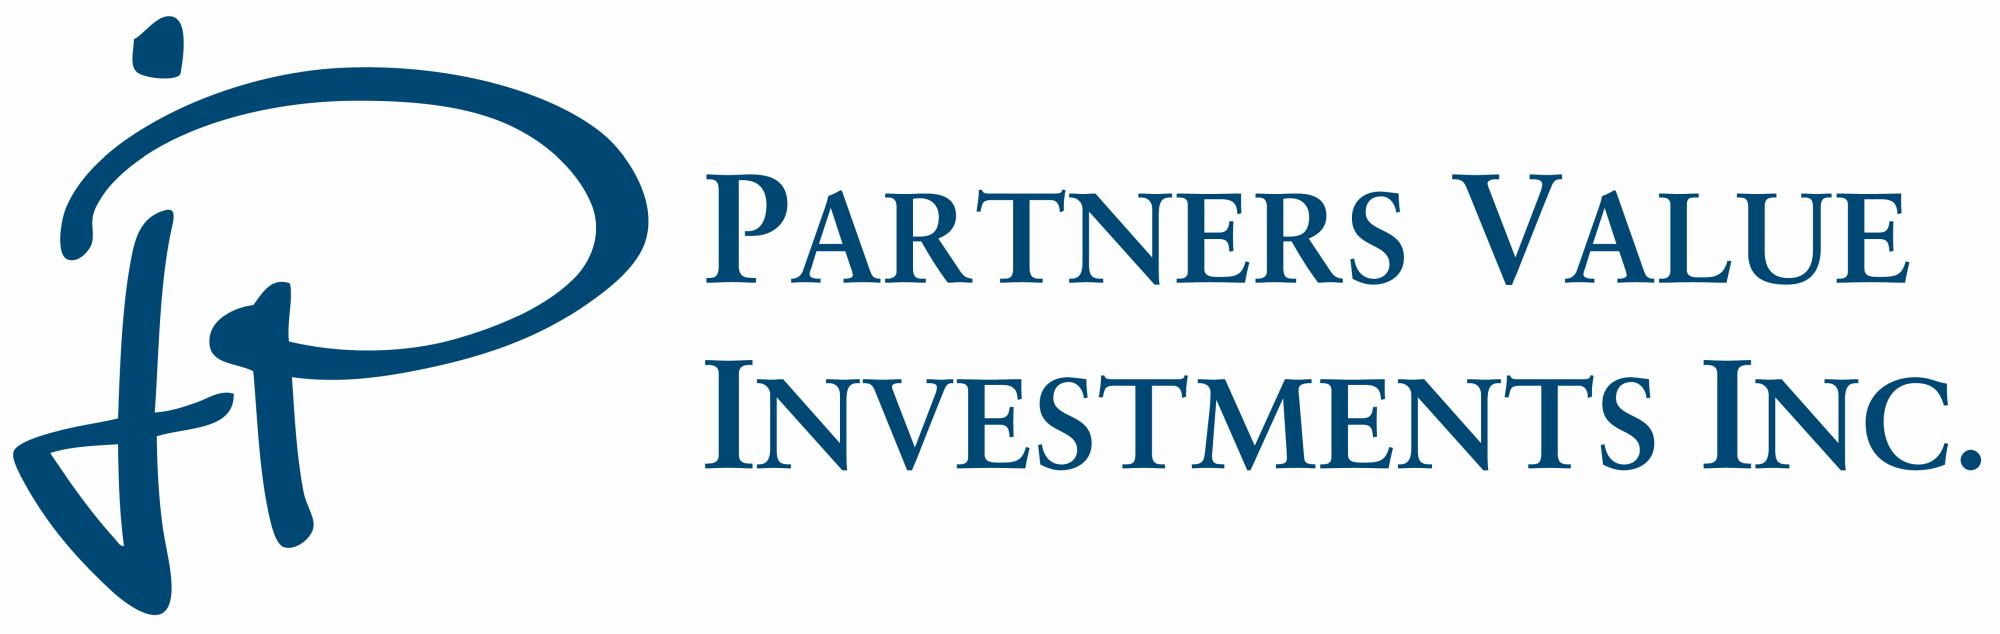 Partners Value Investments Inc